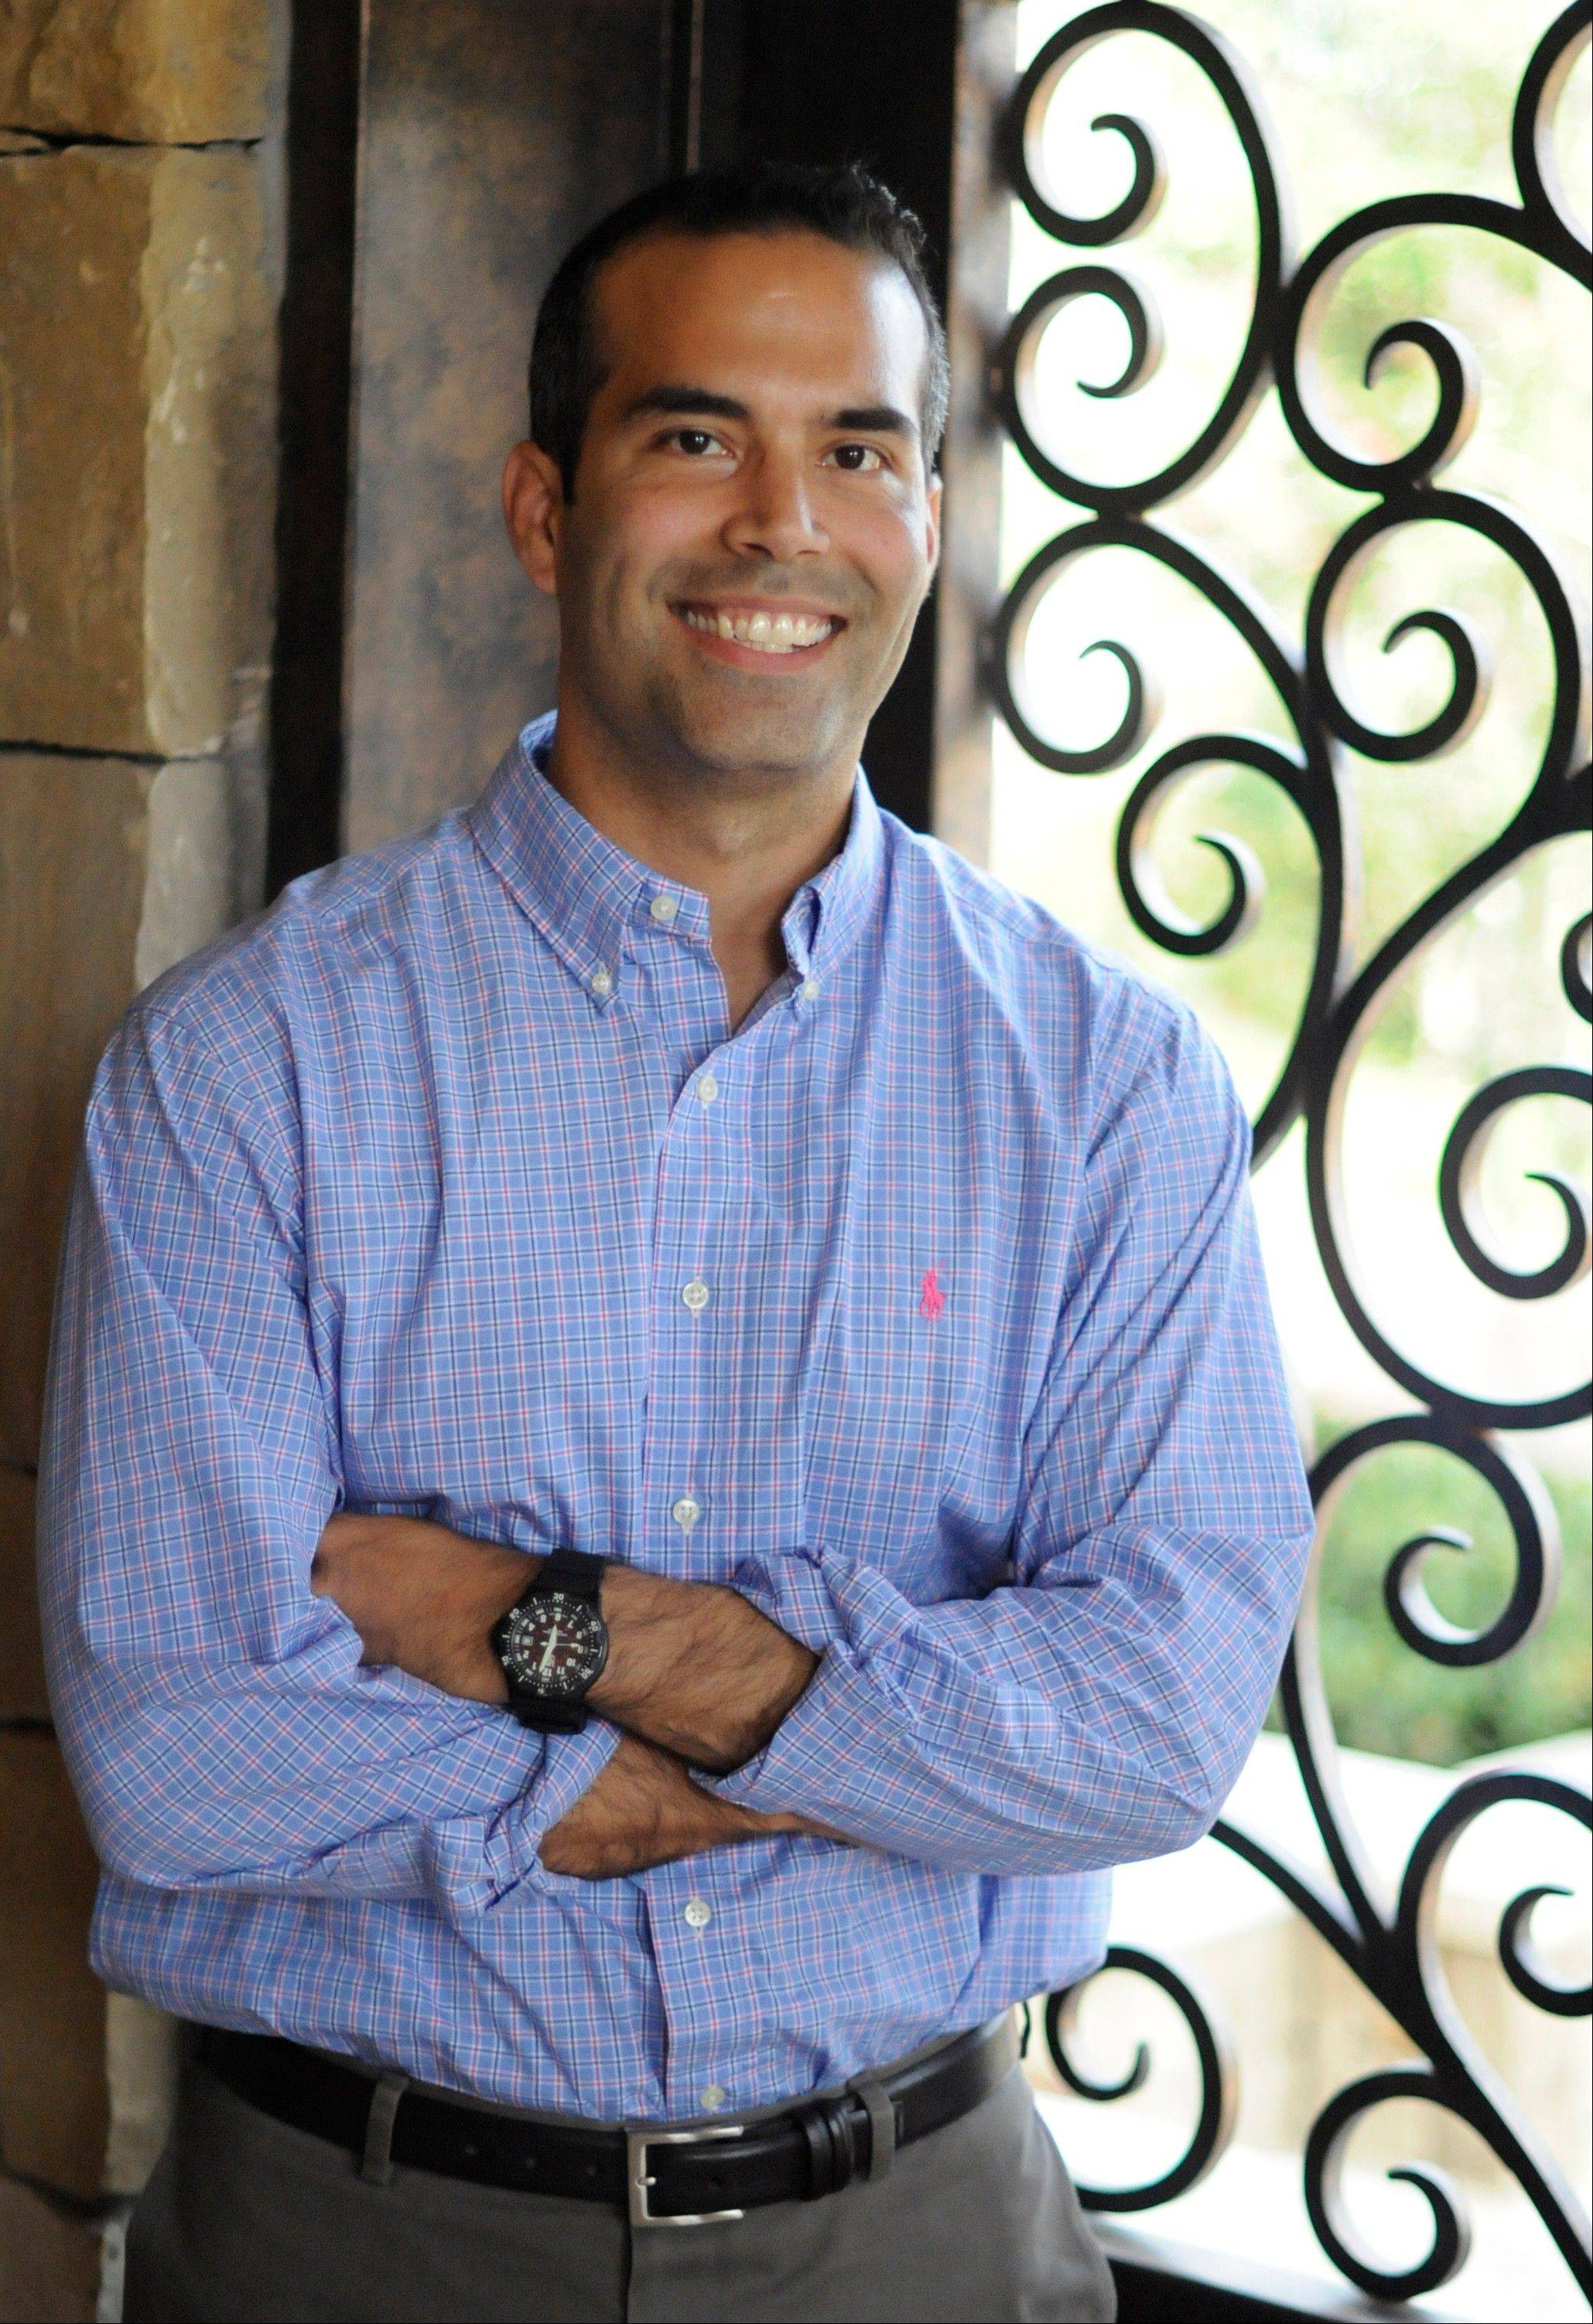 Associated Press George P. Bush, 37, poses for a photo during an interview with The Associated Press in Frisco, Texas.